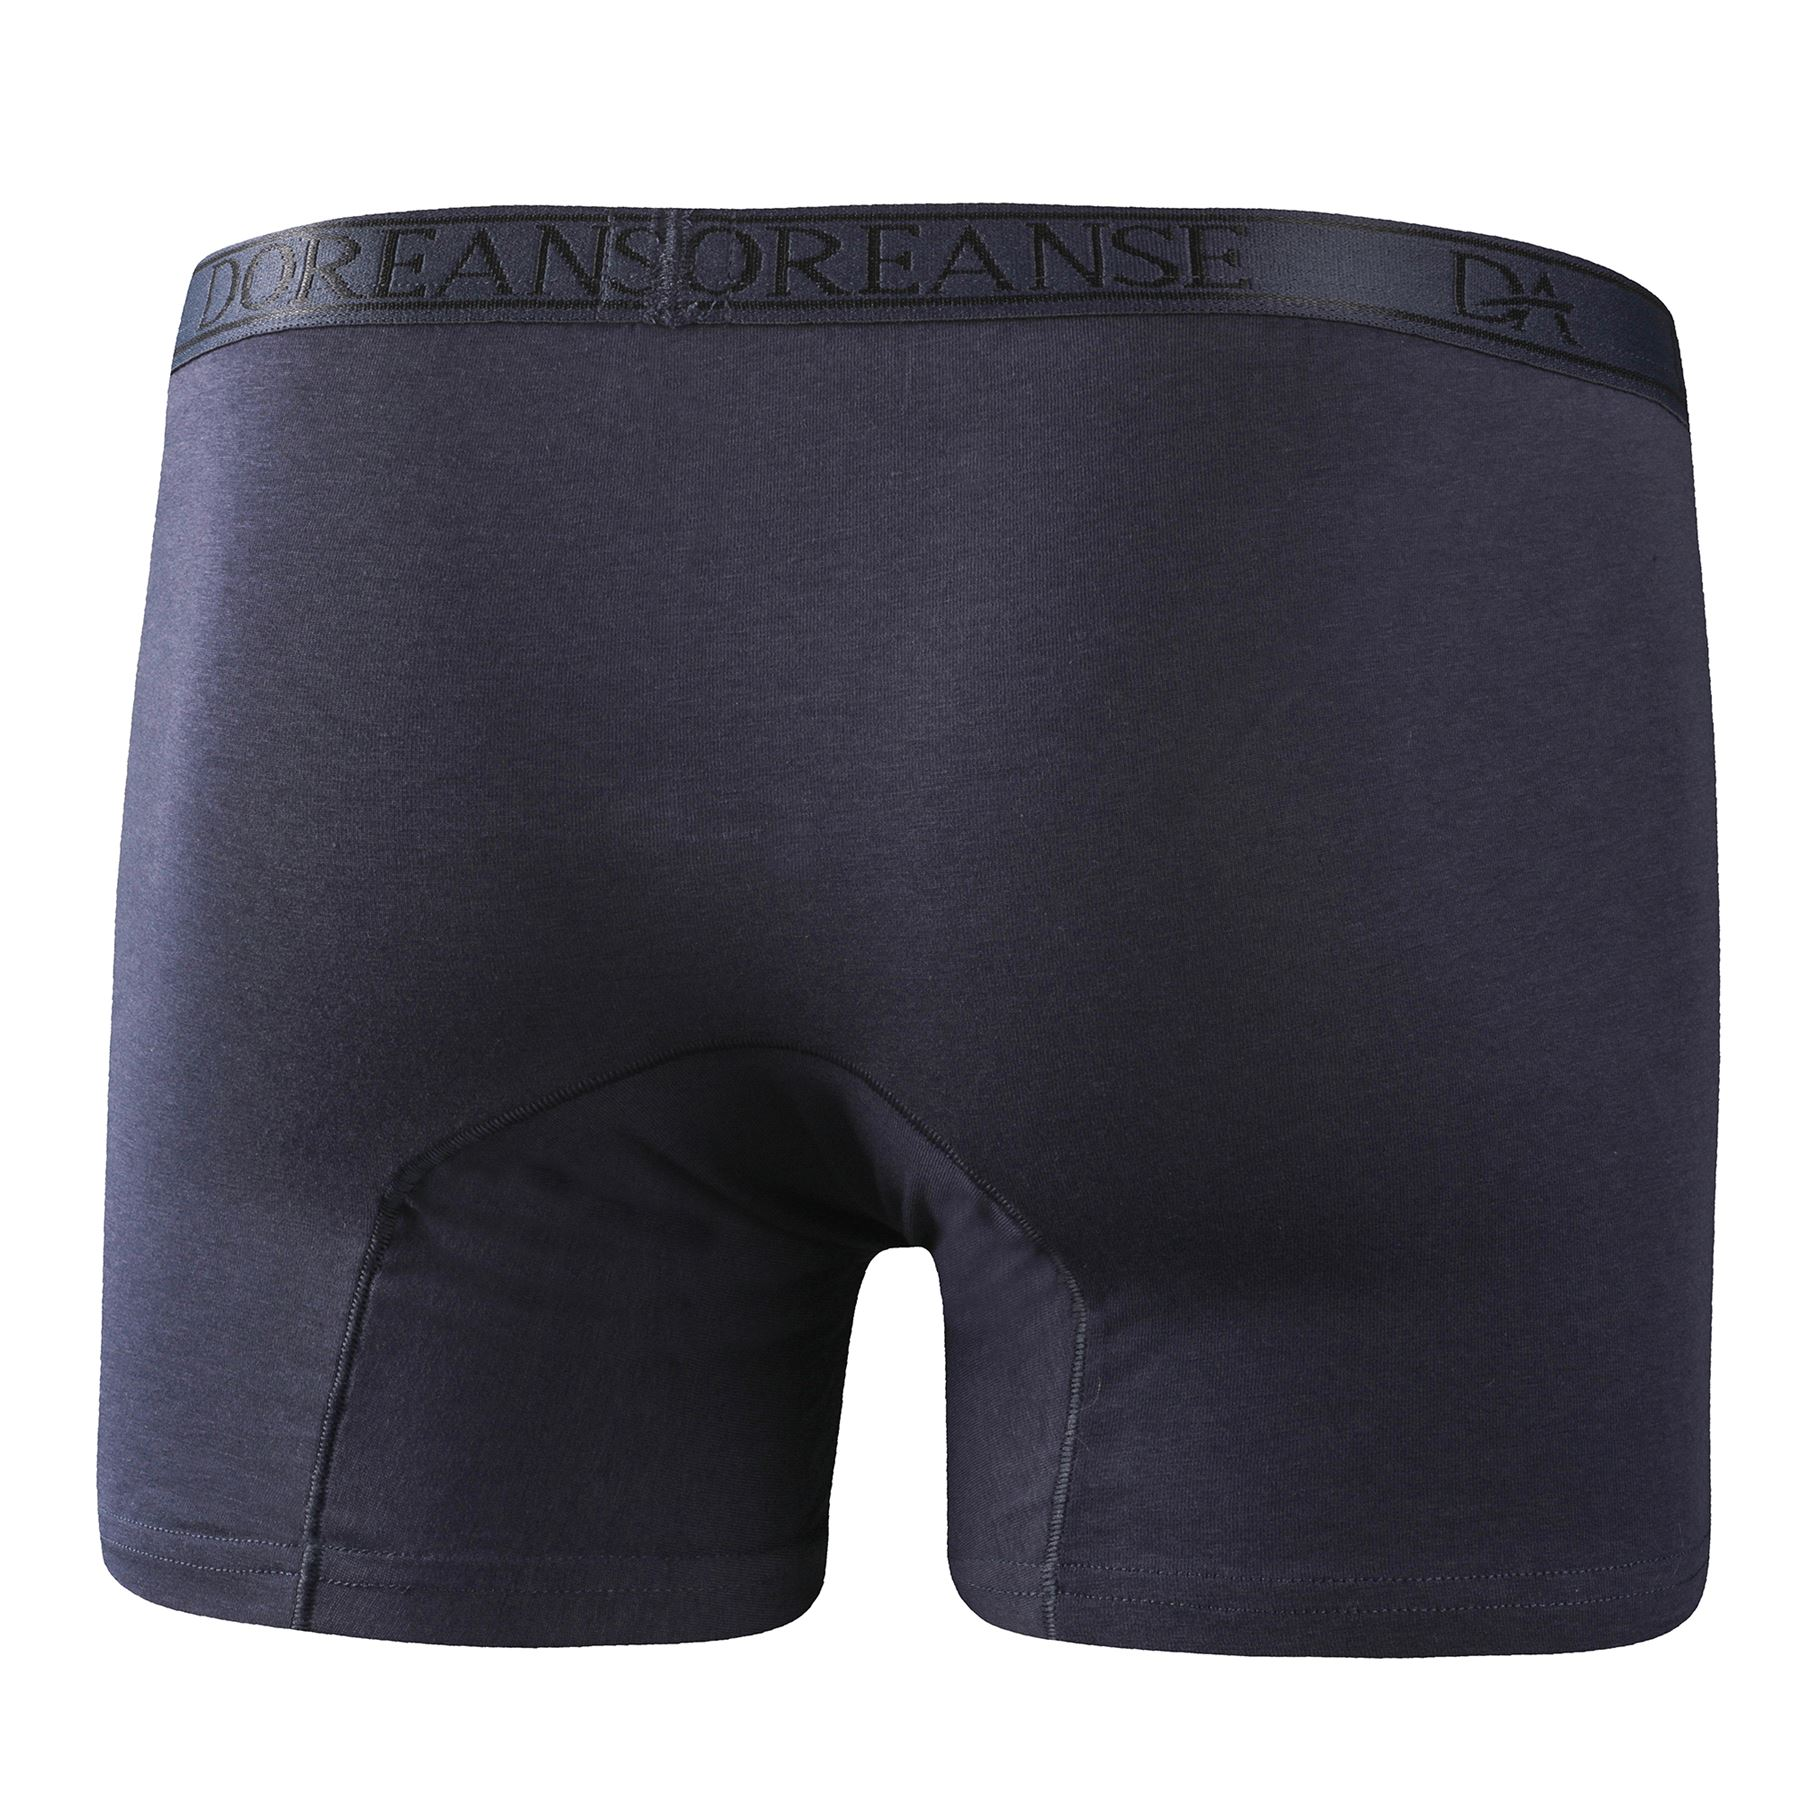 Doreanse 1770 Adonis Boxer Brief Classic Style Supportive Pouch Black Navy White